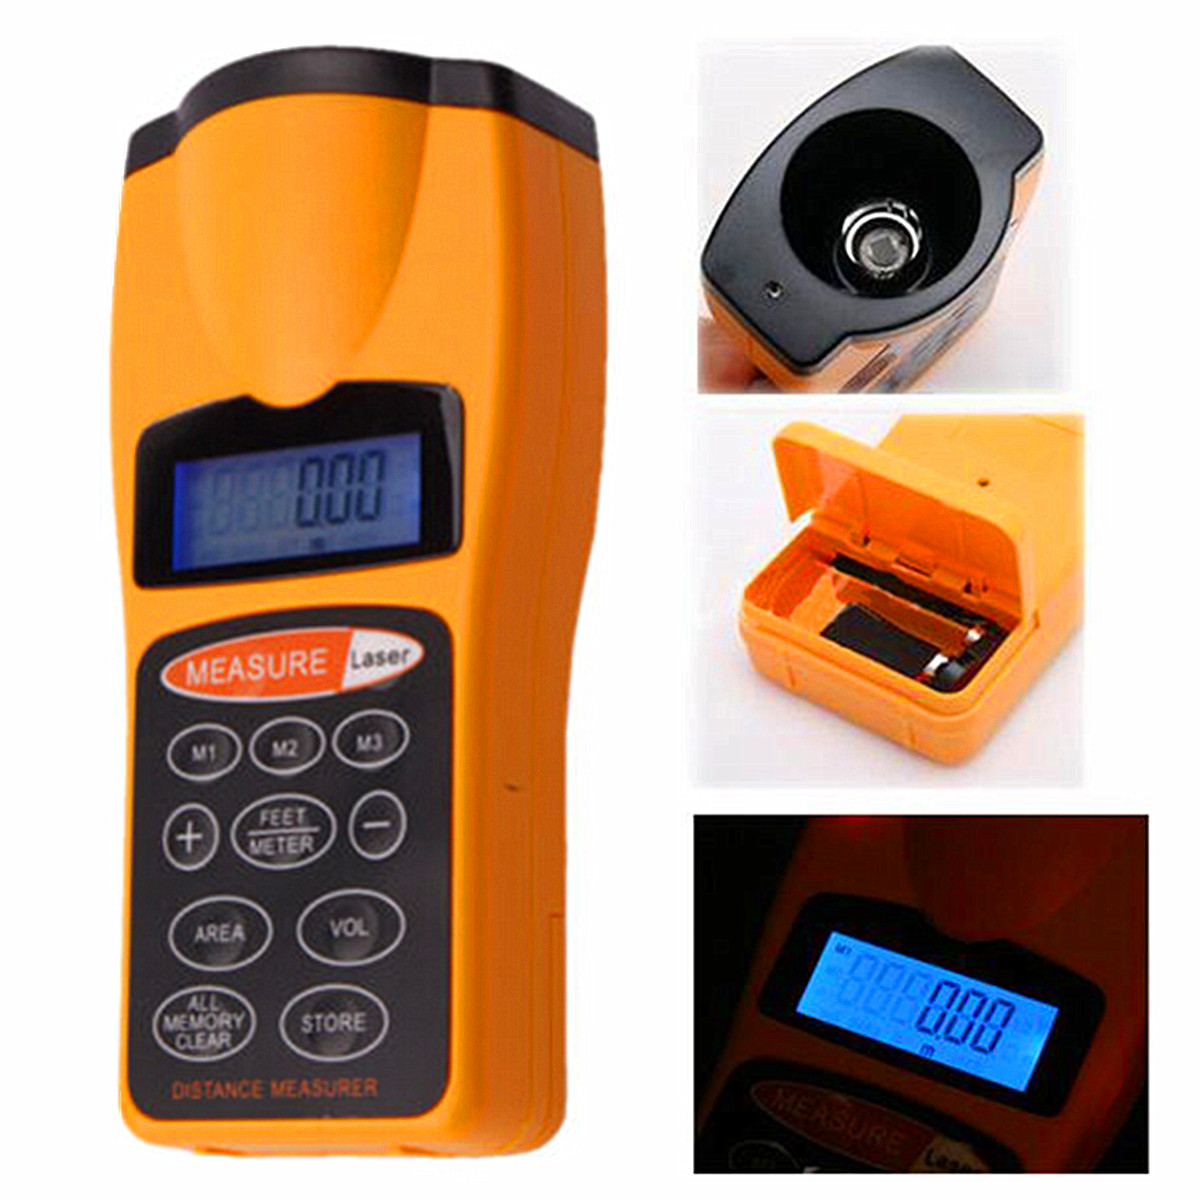 Electronic Tape Measure : Tape ultrasonic measure distance meter laser pointer